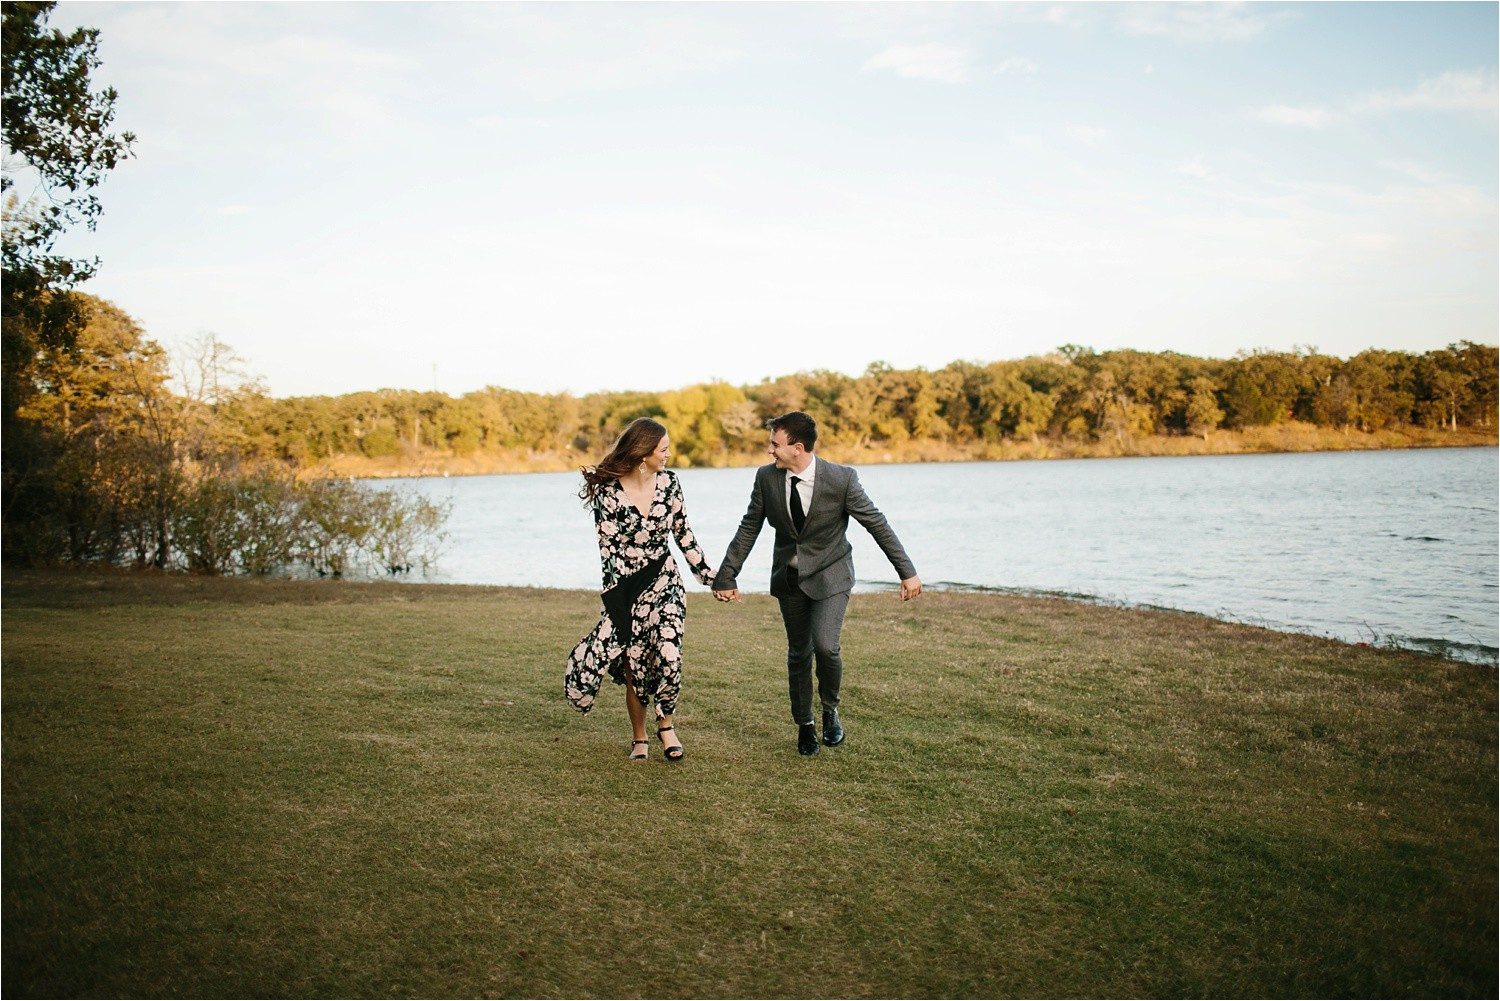 Aleta + Sabian __ a windy lakeside nature engagement session by North Texas Wedding Photographer Rachel Meagan Photography _20